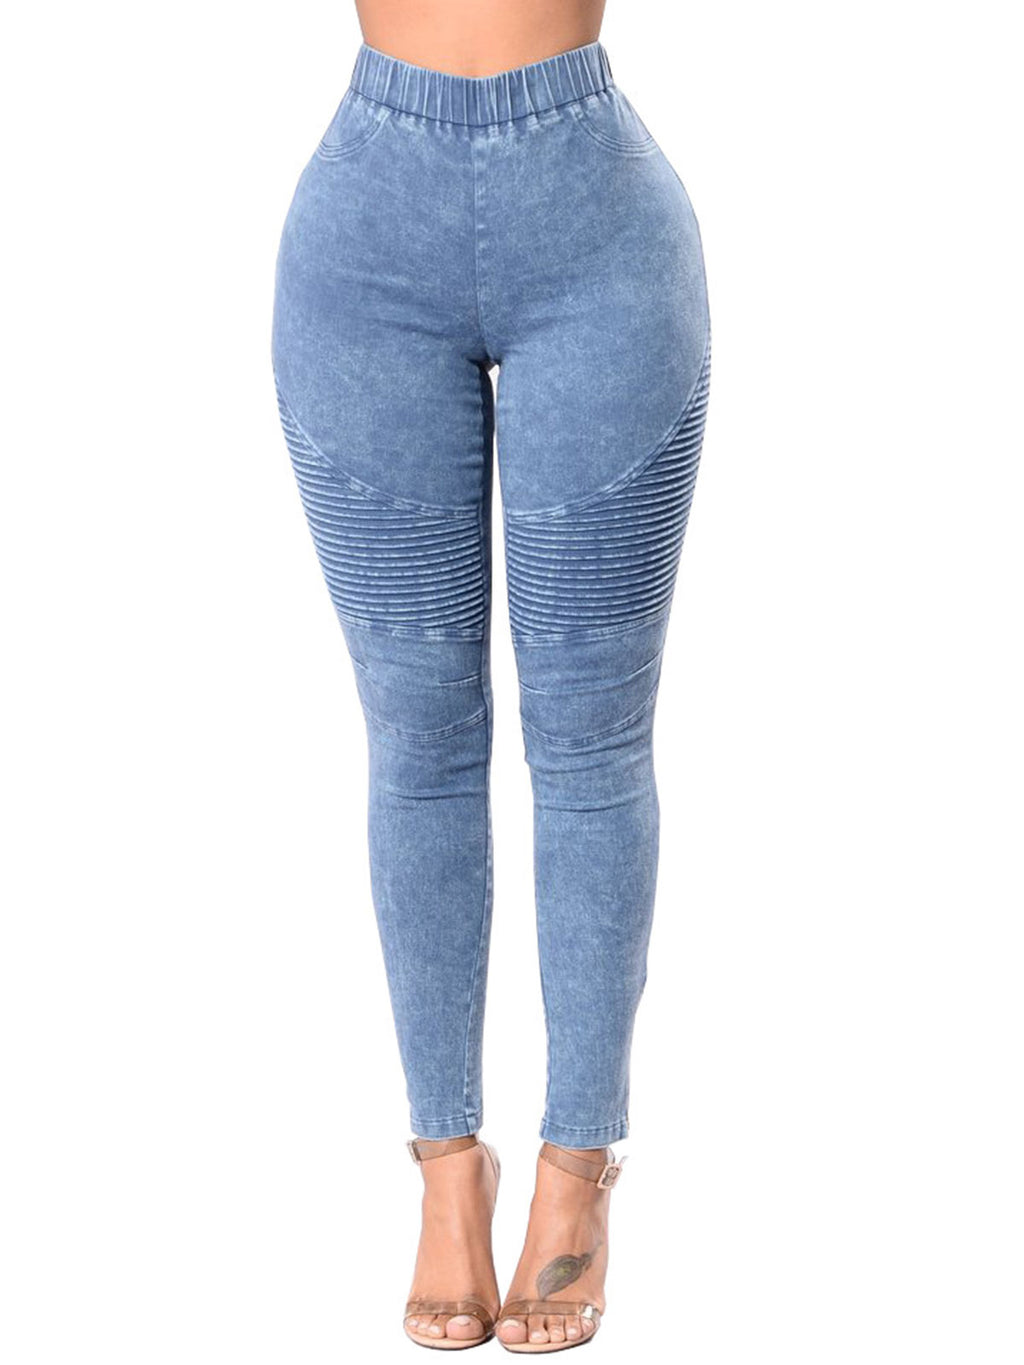 Solid Color Pleated Ankle Length High-Waist Jeans